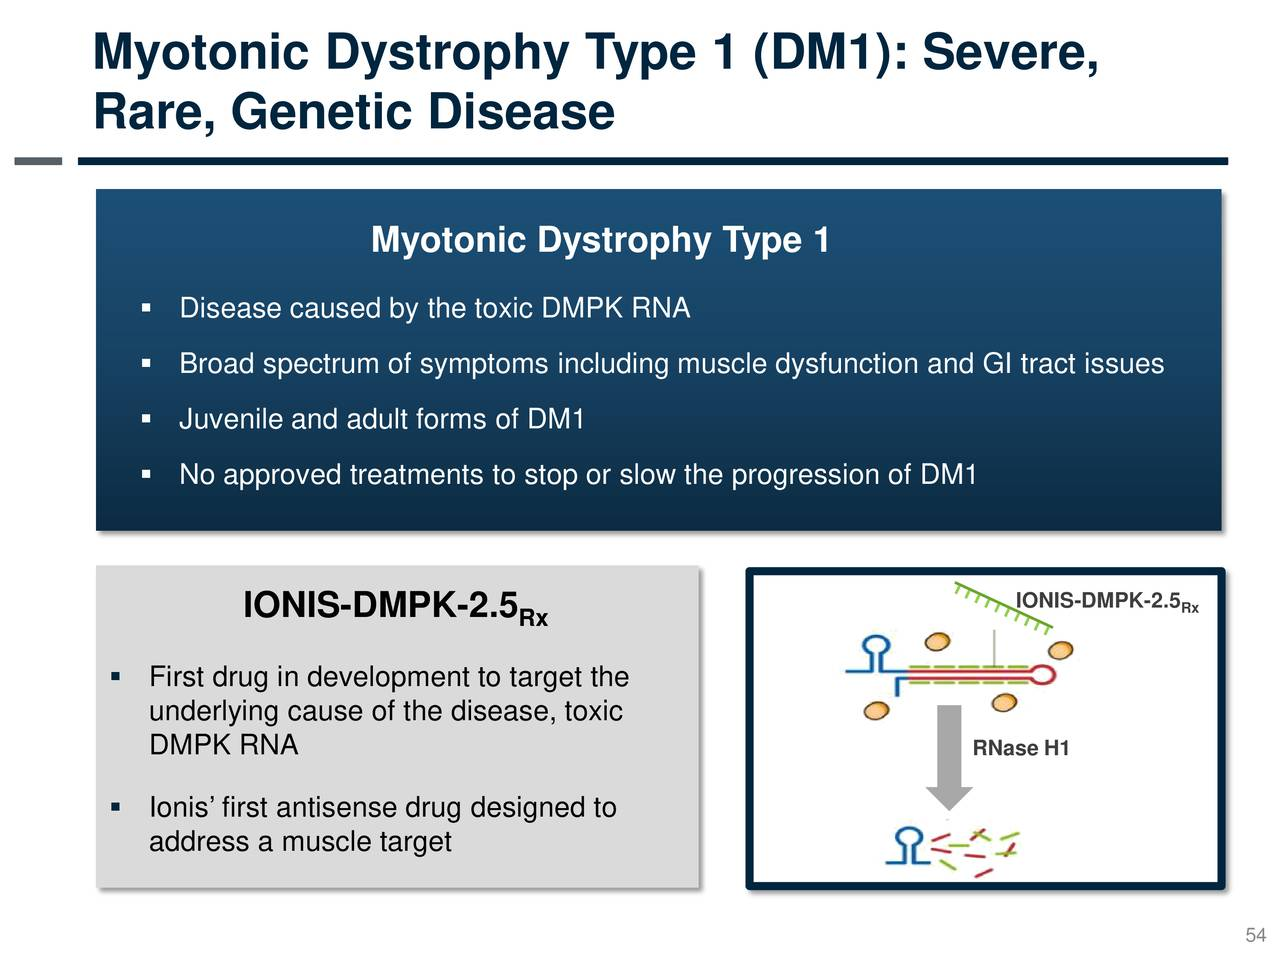 myotonic dystrophy research paper Featured articles the following featured articles include those from nichd researchers or nichd-supported researchers:.